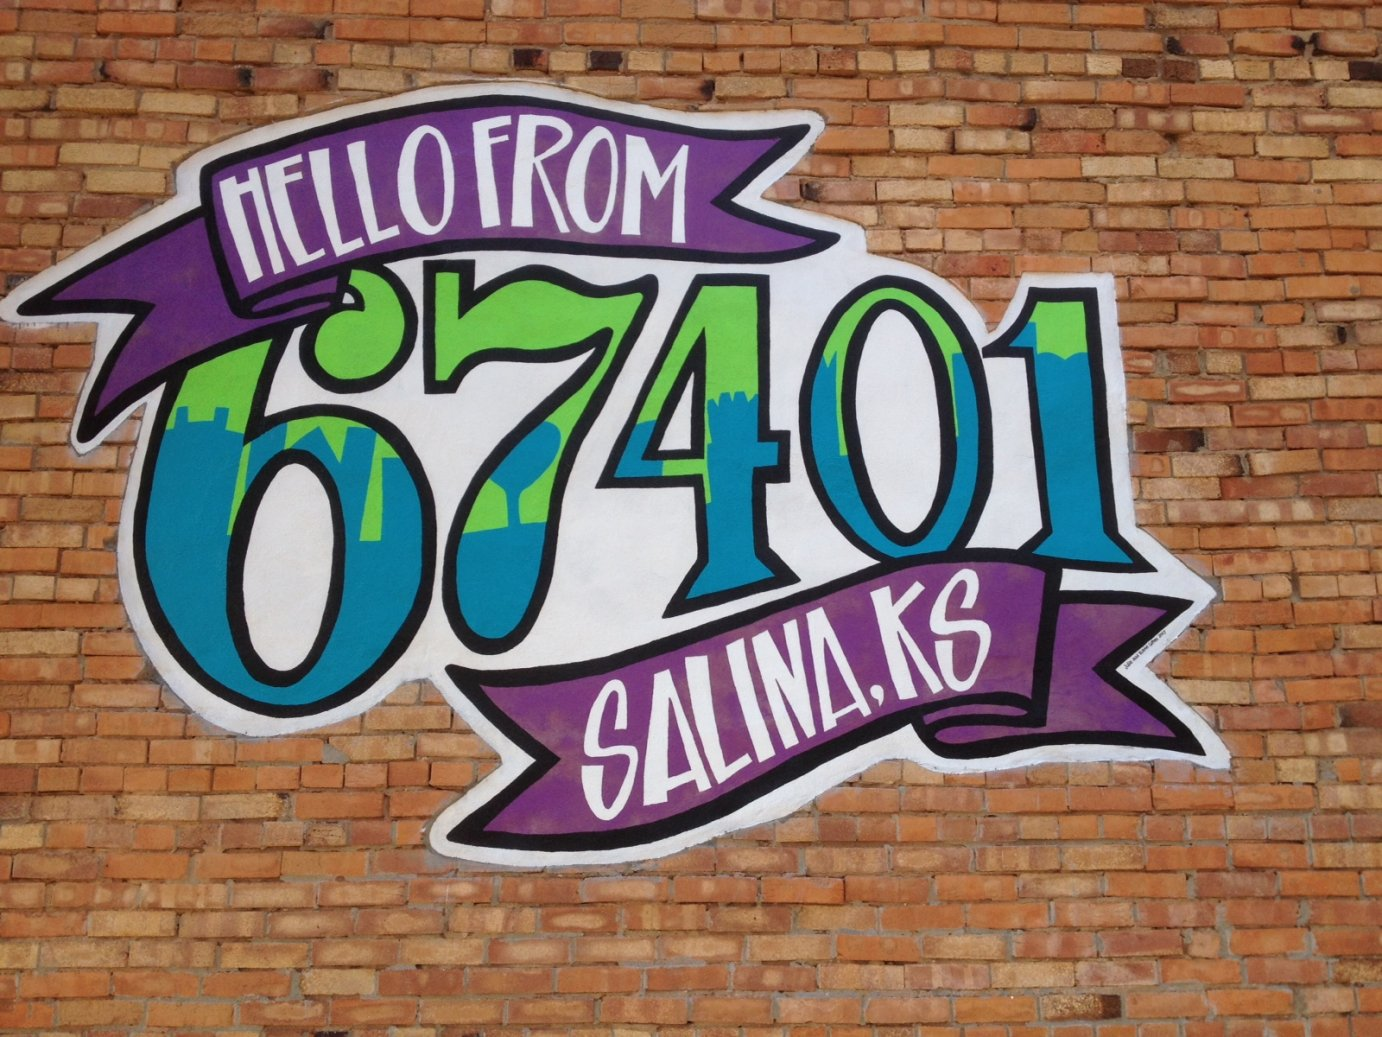 Mural seen on a building in Salina (Photo by Bryan Thompson)